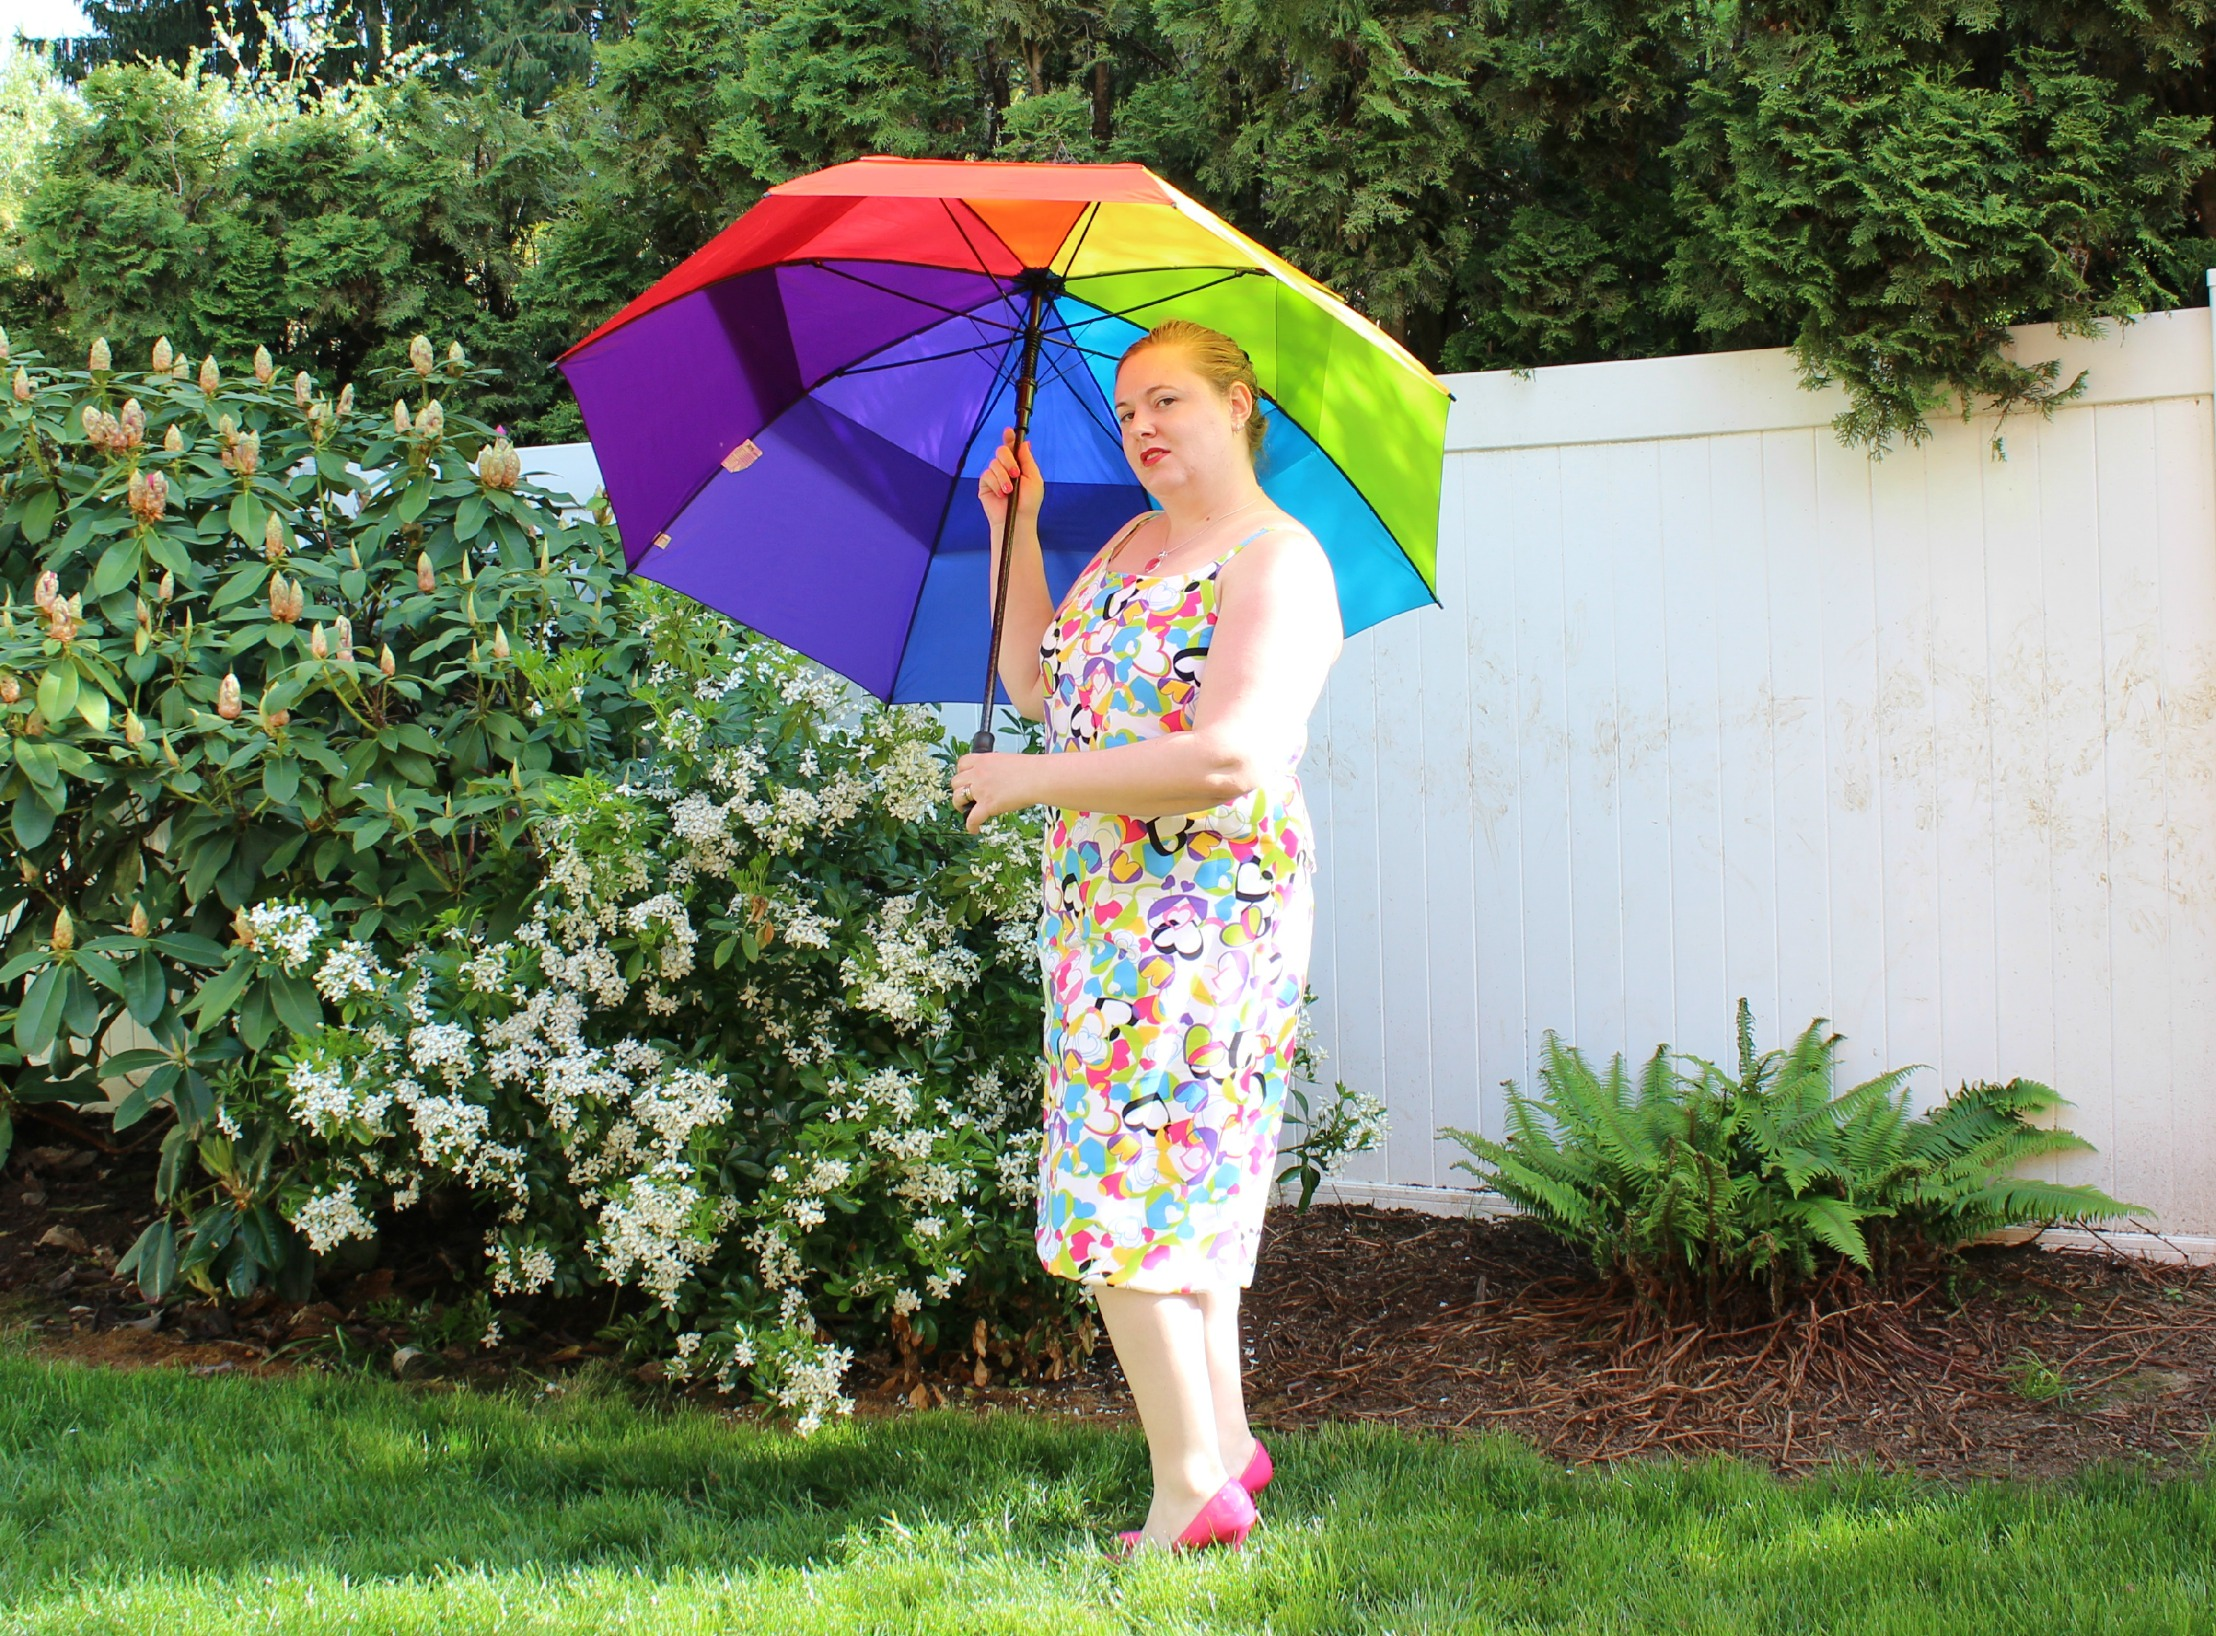 Heart Dress with Umbrella 2